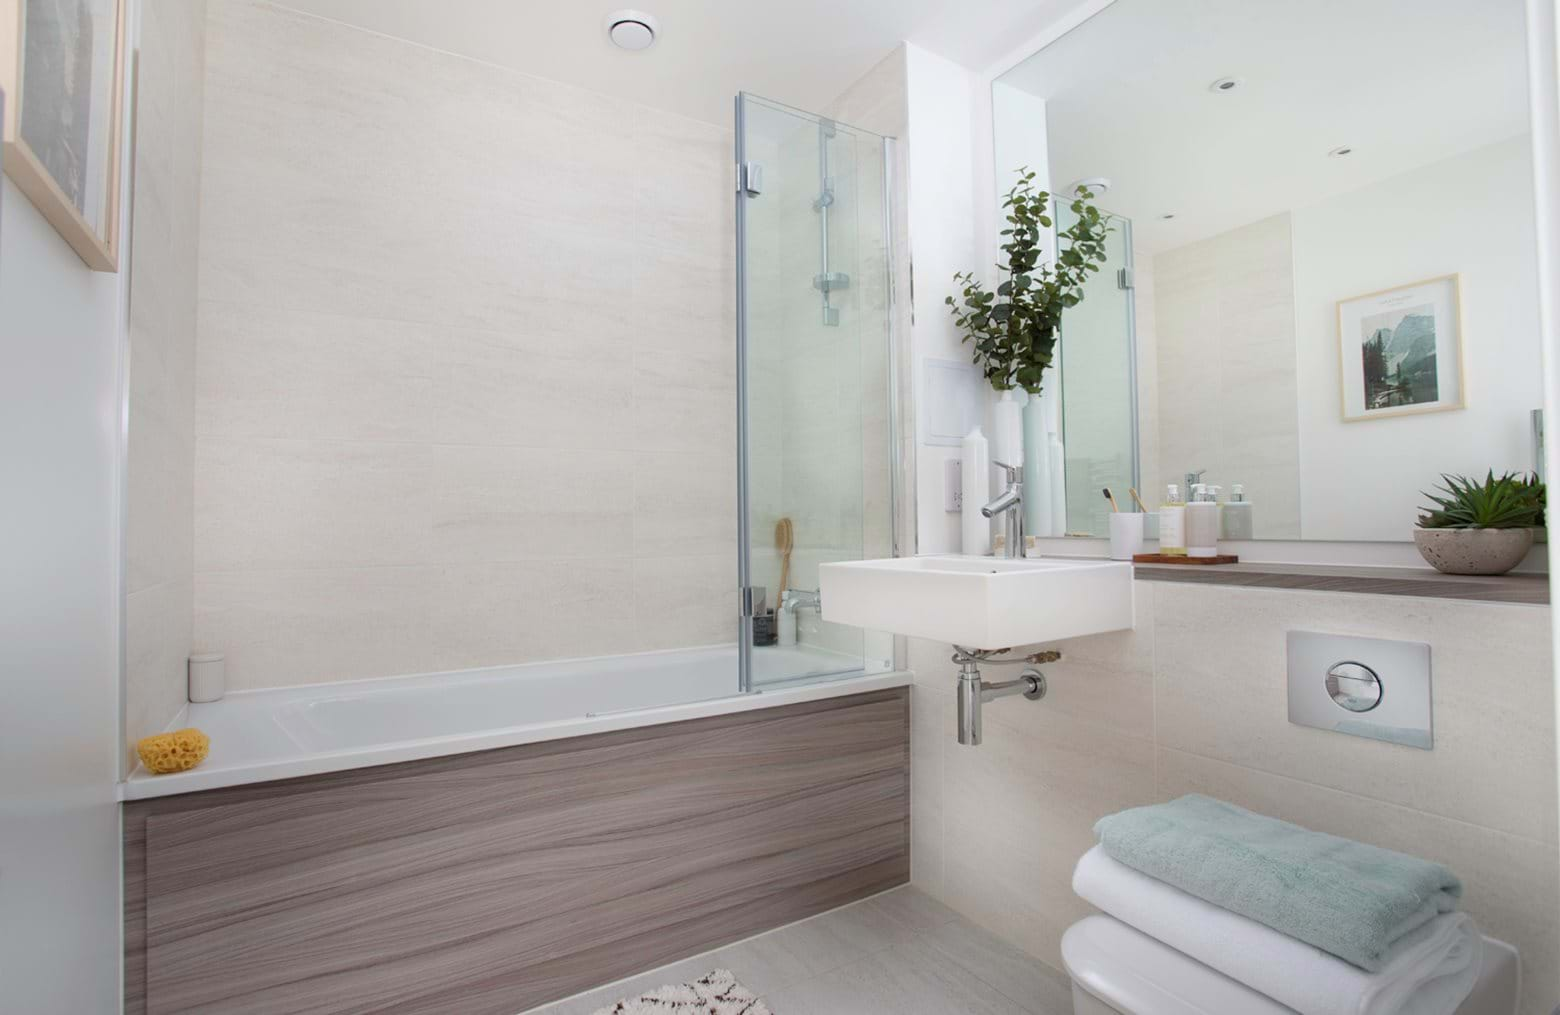 Colindale Gardens - Shared Ownership bathroom